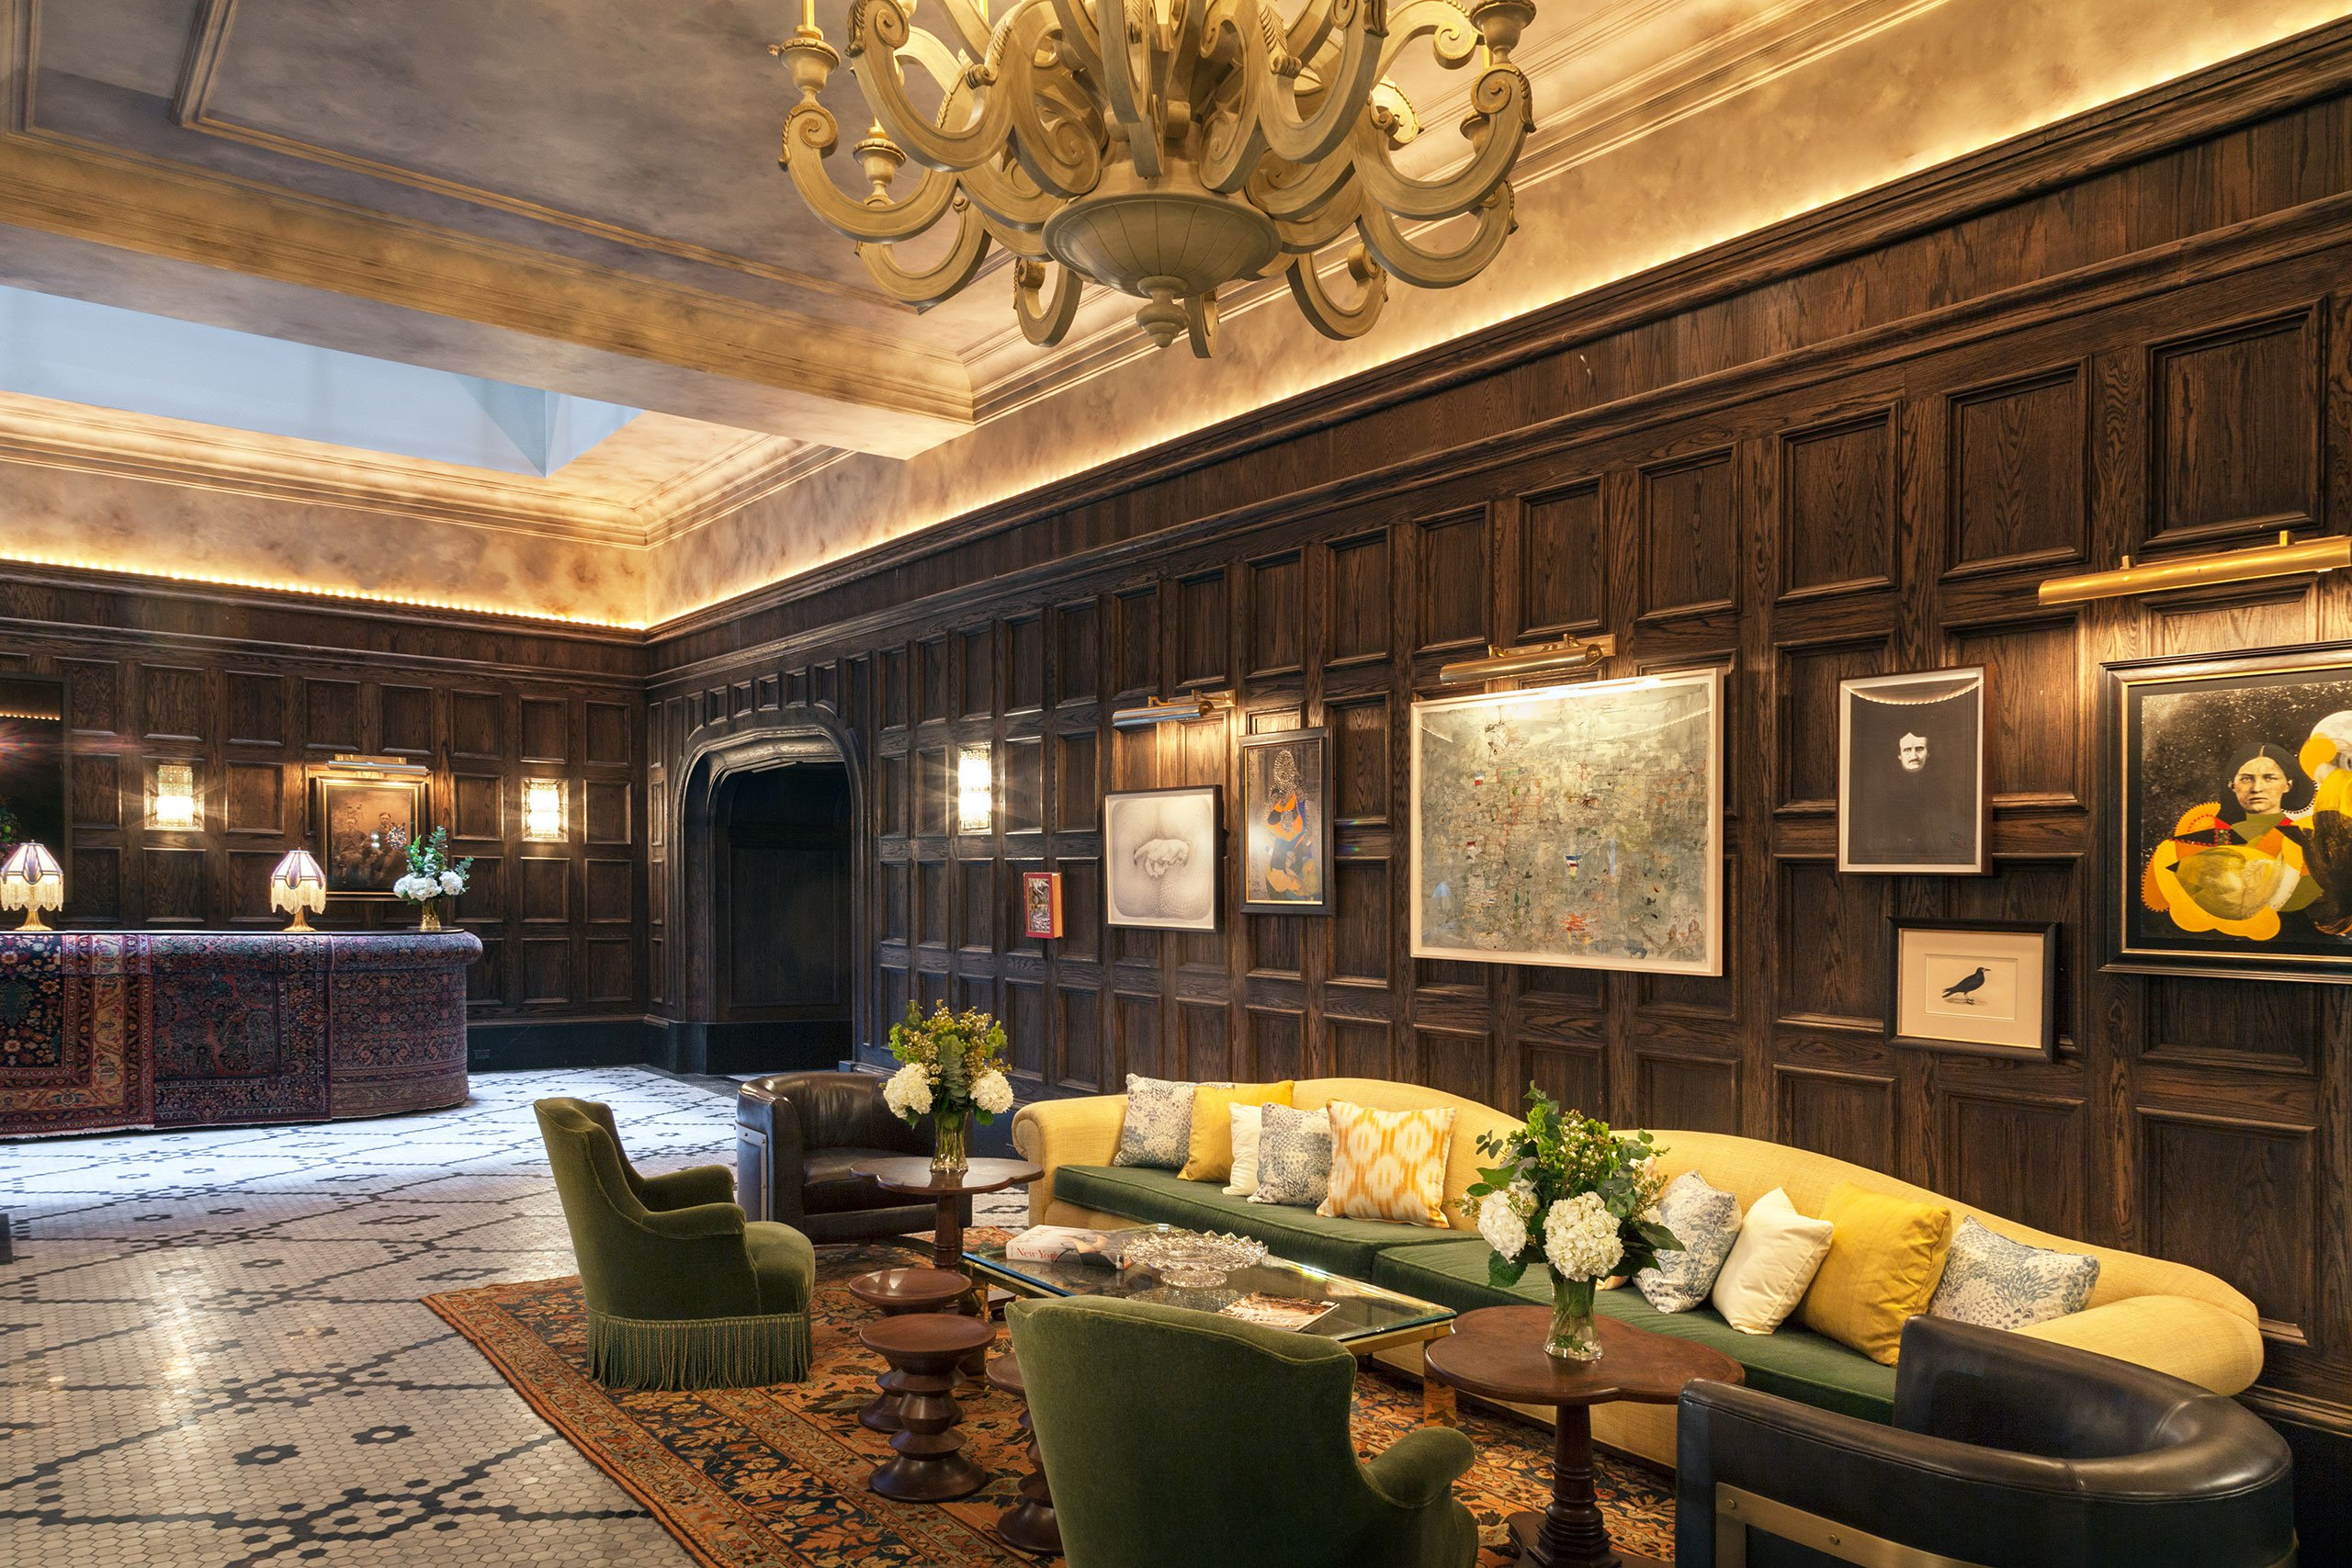 Manhattan Hotel: The_beekman_a_thompson_hotel_new_york_yatzer_martin brudnizki, mandy stool by koket, luxury furniture manhattan hotel Historic NYC Building Revival Gives Rise to a Luxury Manhattan Hotel p5 the beekman a thompson hotel new york yatzer